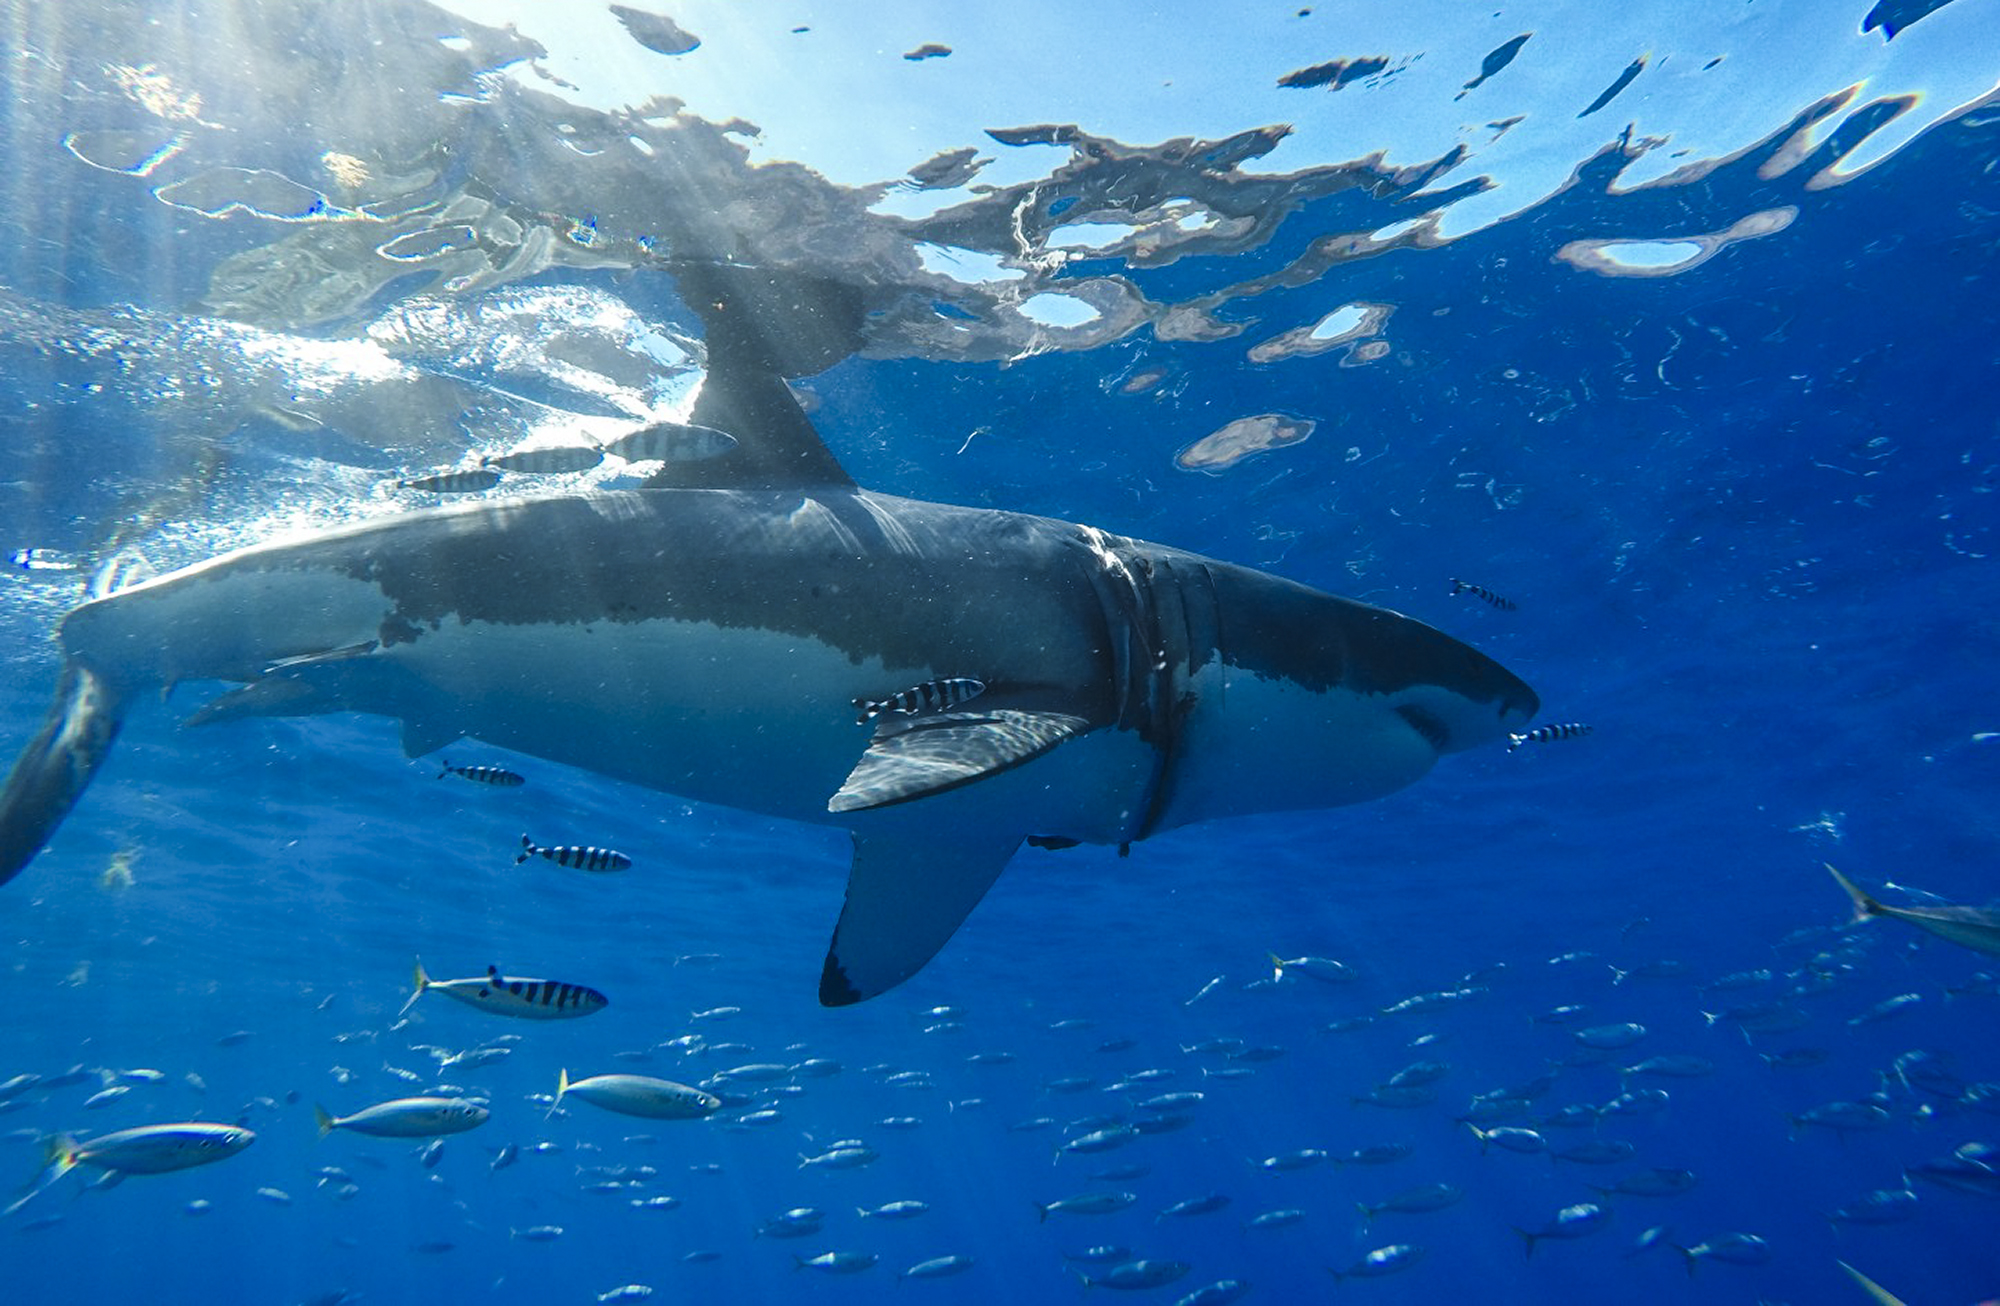 A large great white at Guadalupe Island